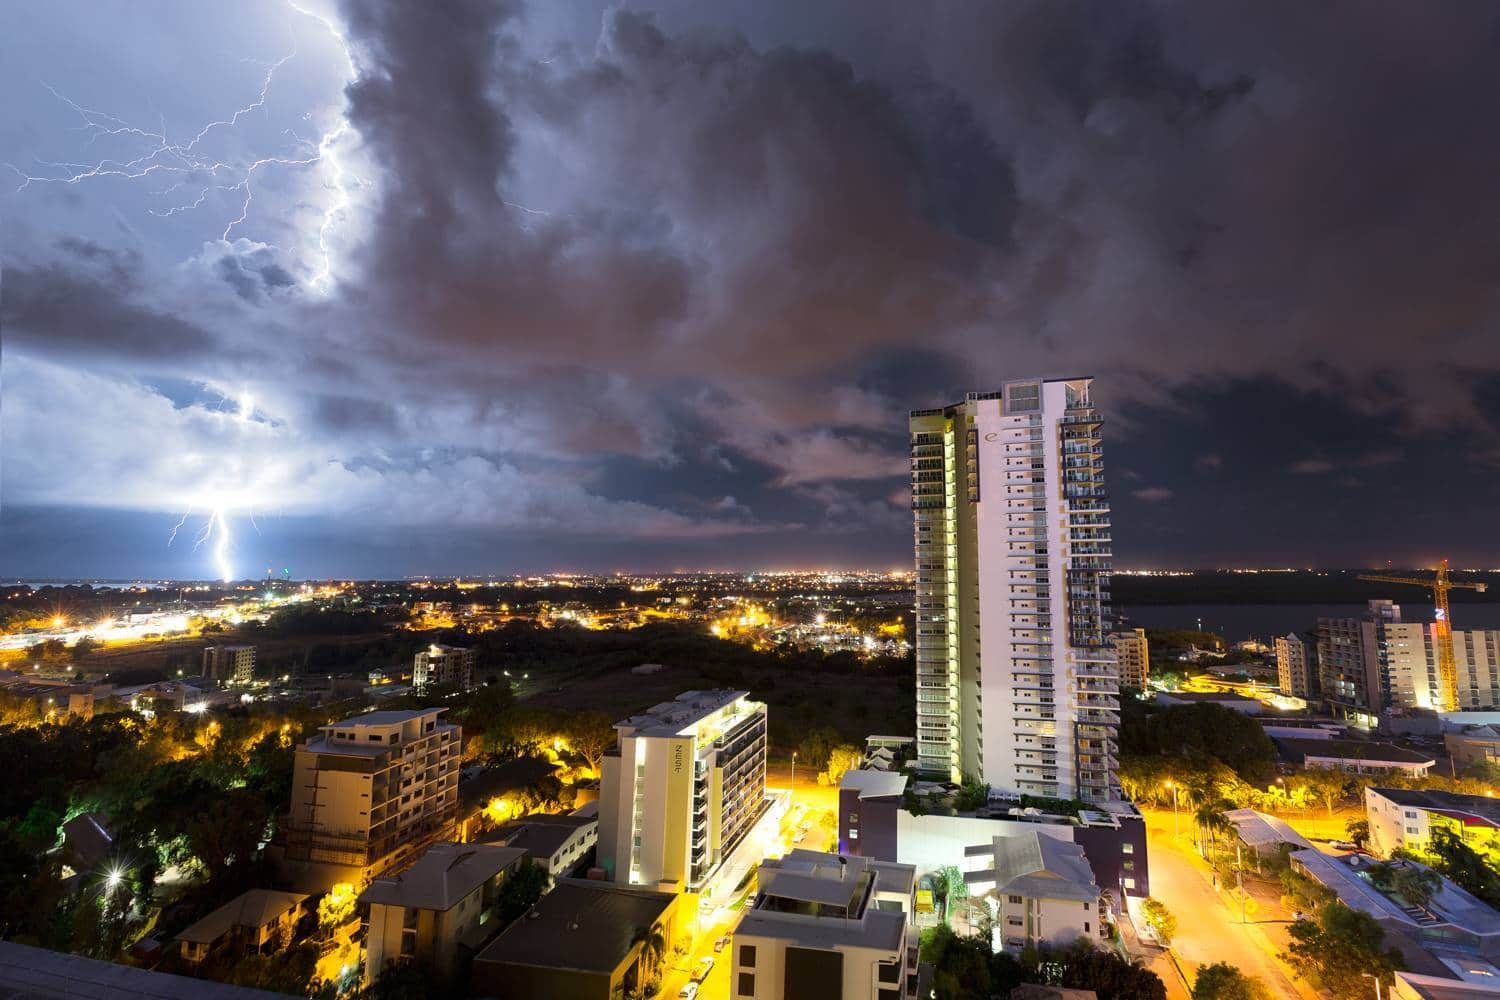 Darwin - Northern Territory Australia Hanging off a balcony watching the storm smash bolts down around the place is something else! highly recommend you do it